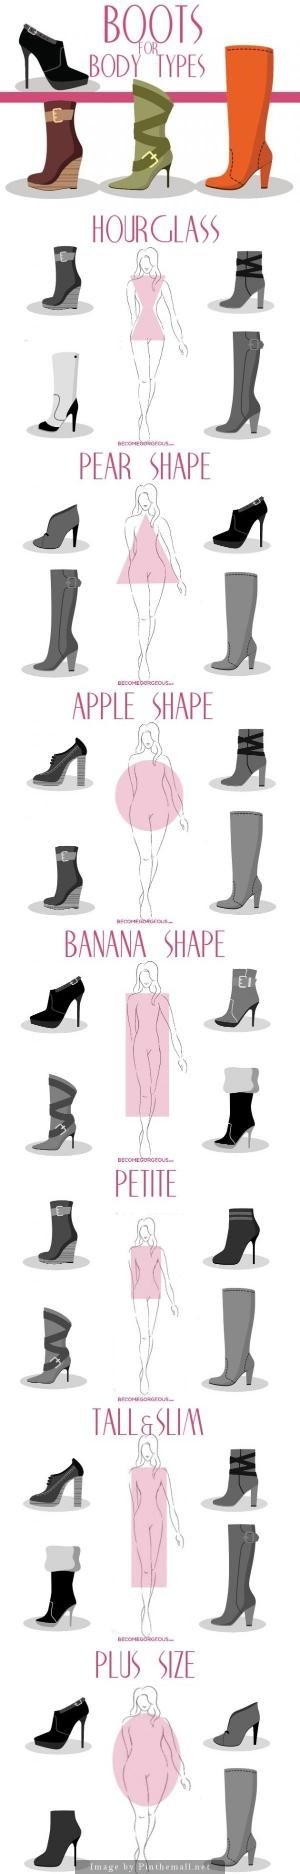 Best Boots for Your Body Shape by felicia